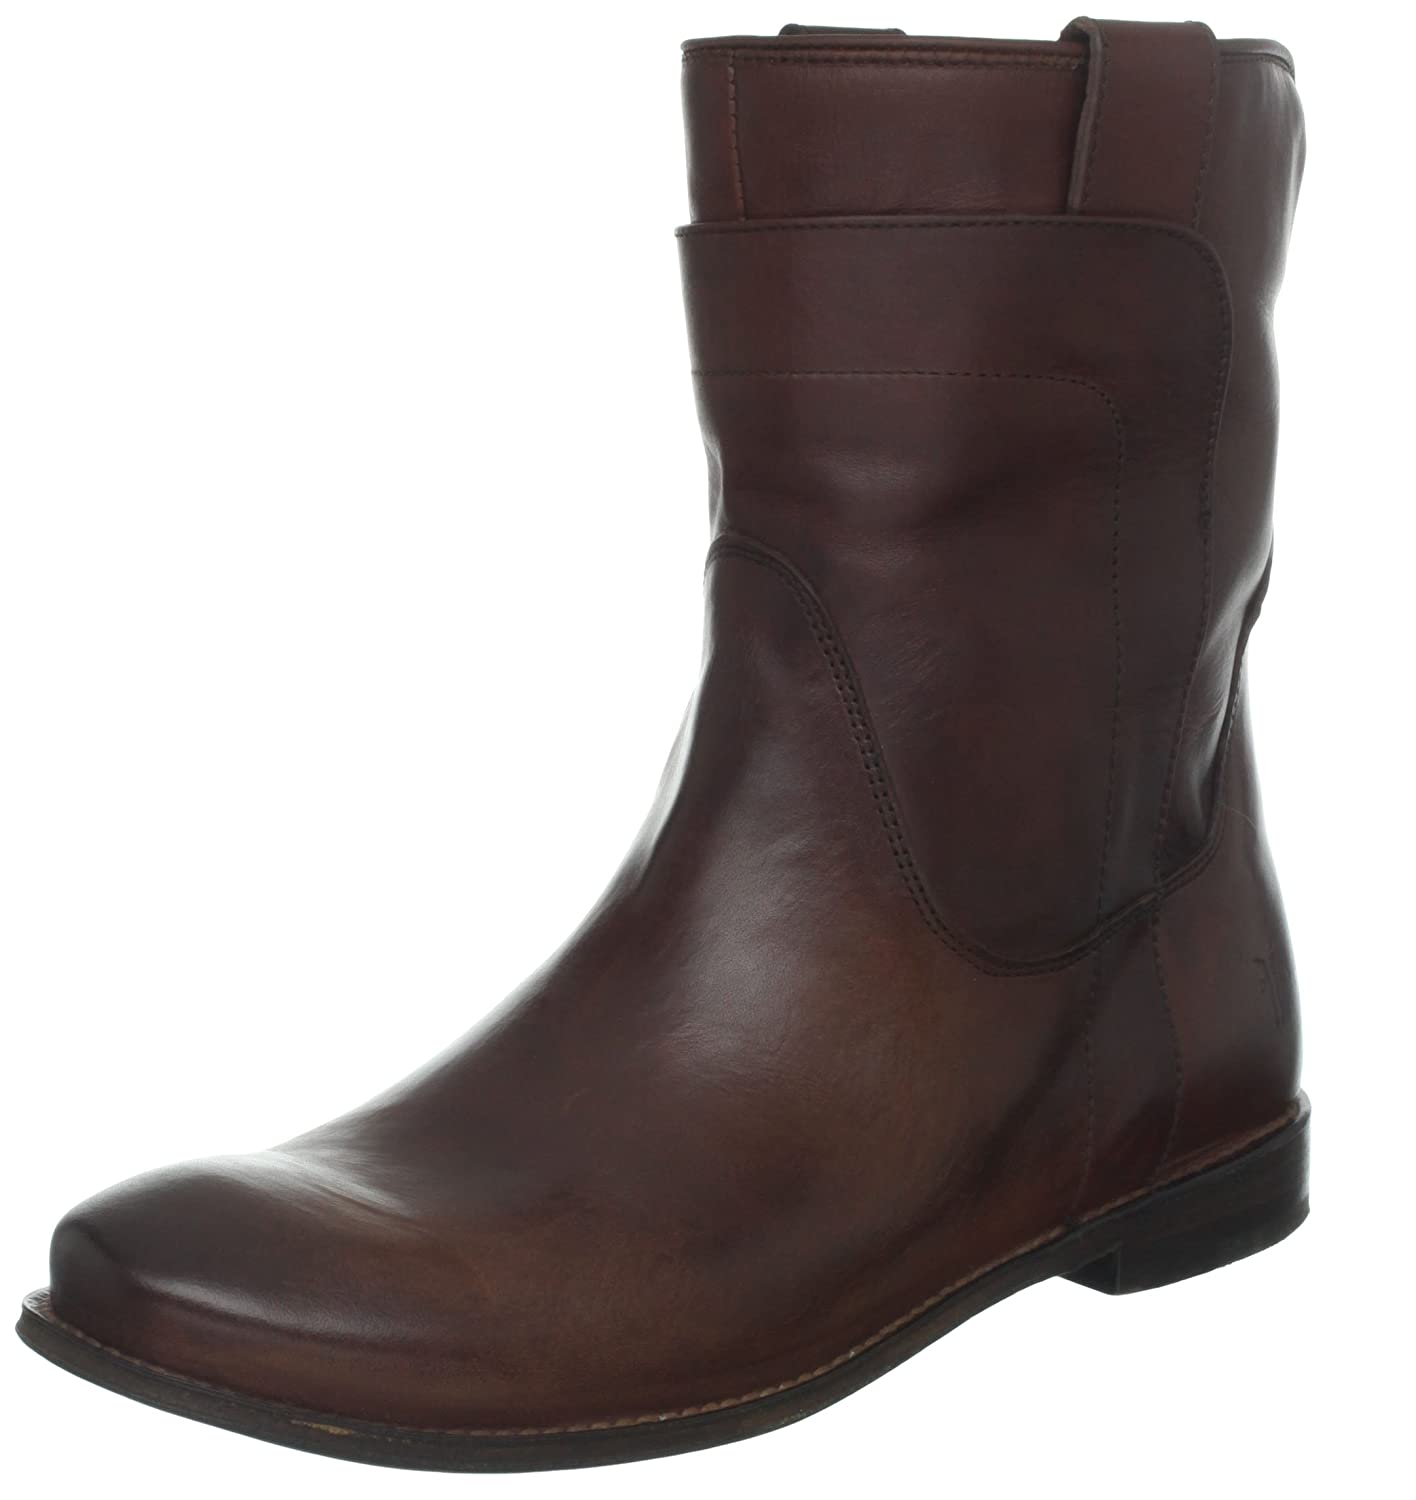 [FRYE] レディースPaige Short Riding Boot 赤wood Smooth Vintage Leather-76958 7.5 B(M) US